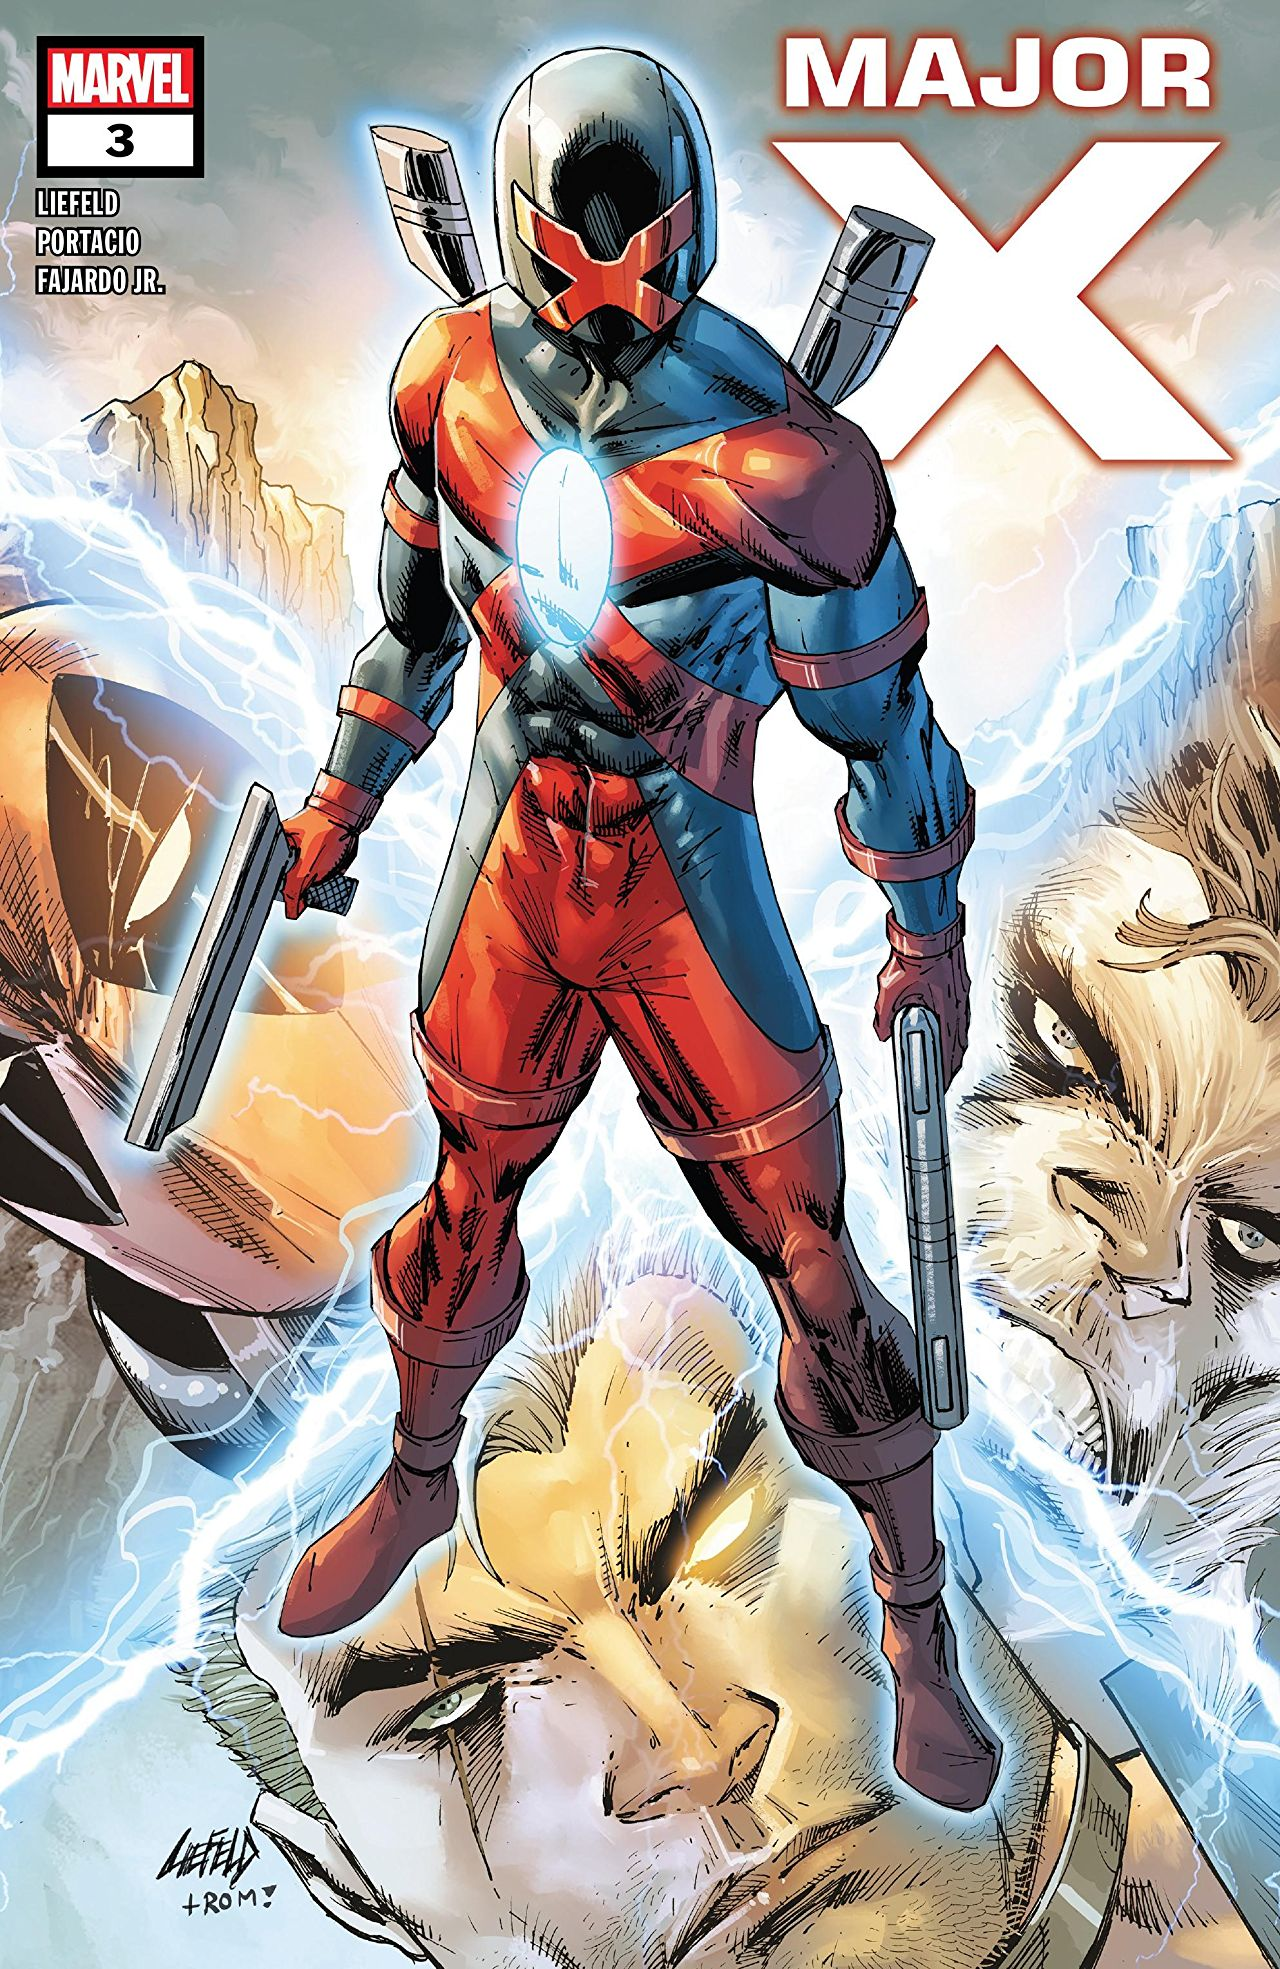 Can Major X leap through time to save X-Istence?